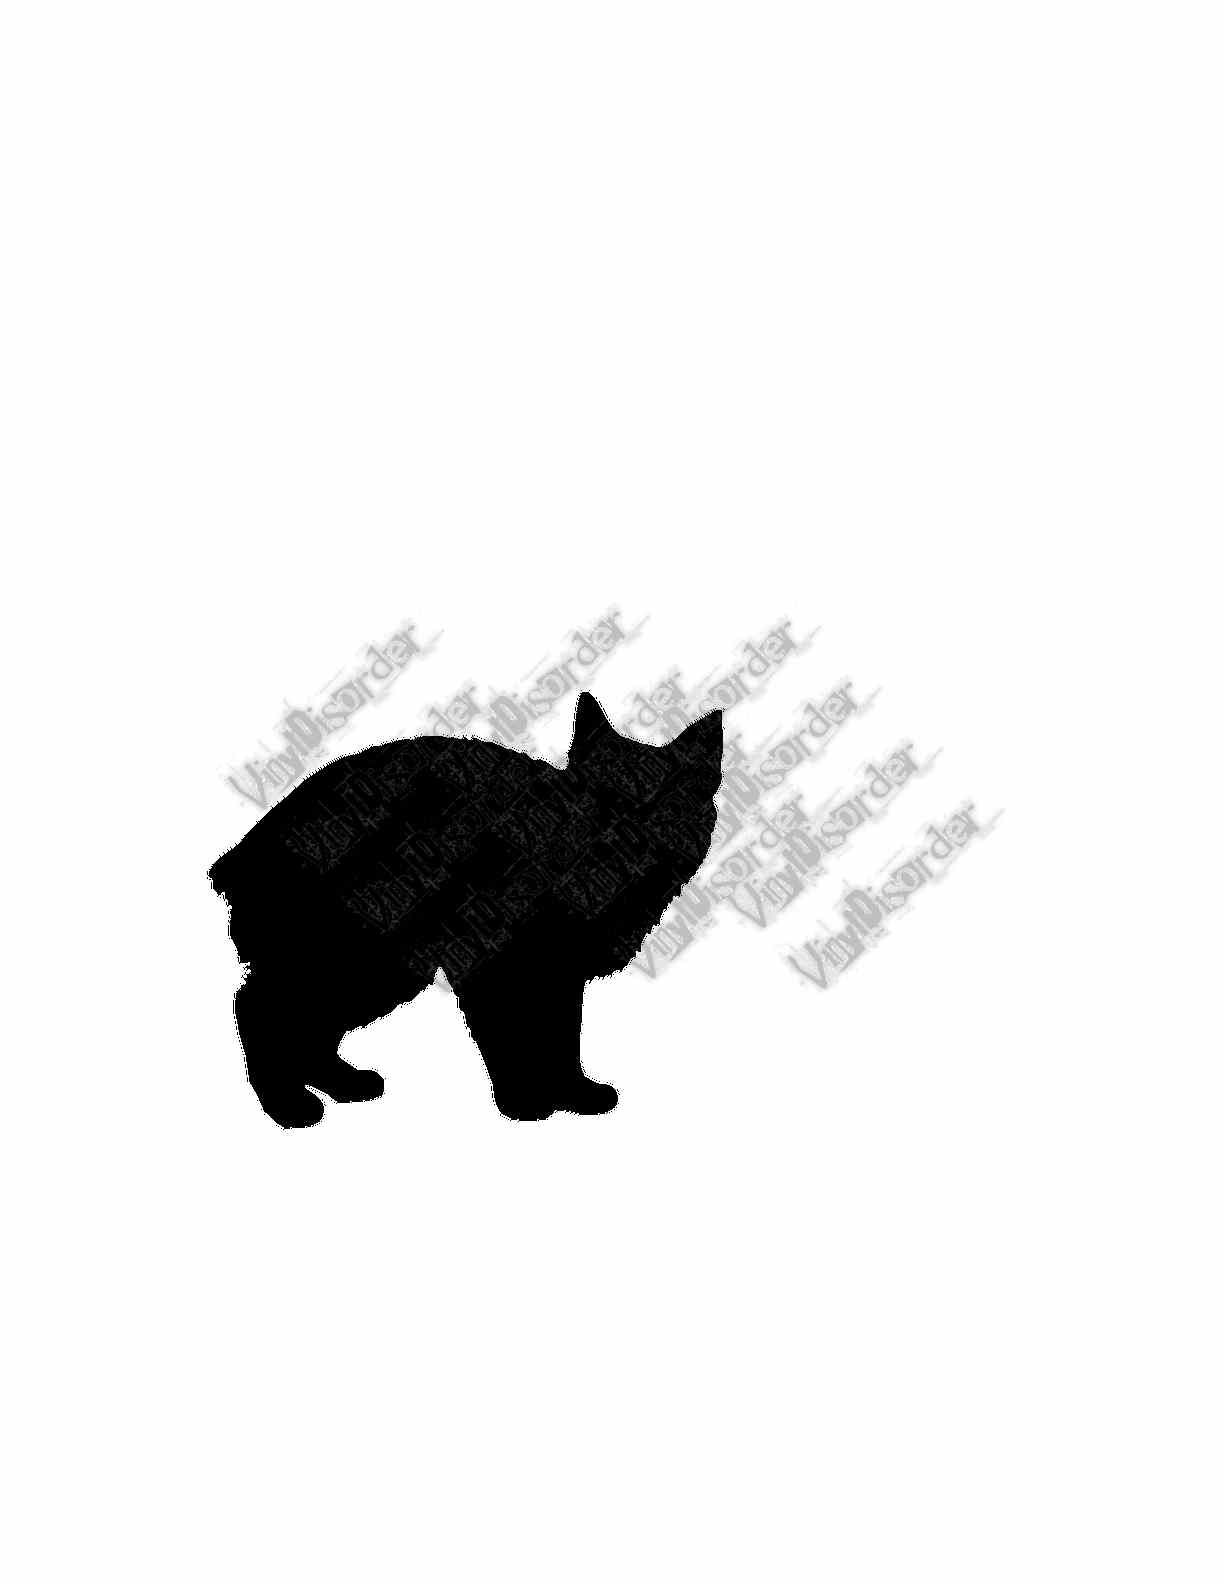 Manx Cat Wall Decal Custom Vinyl Decal Cats Pinterest Manx - Vinyl decal cat pinterest